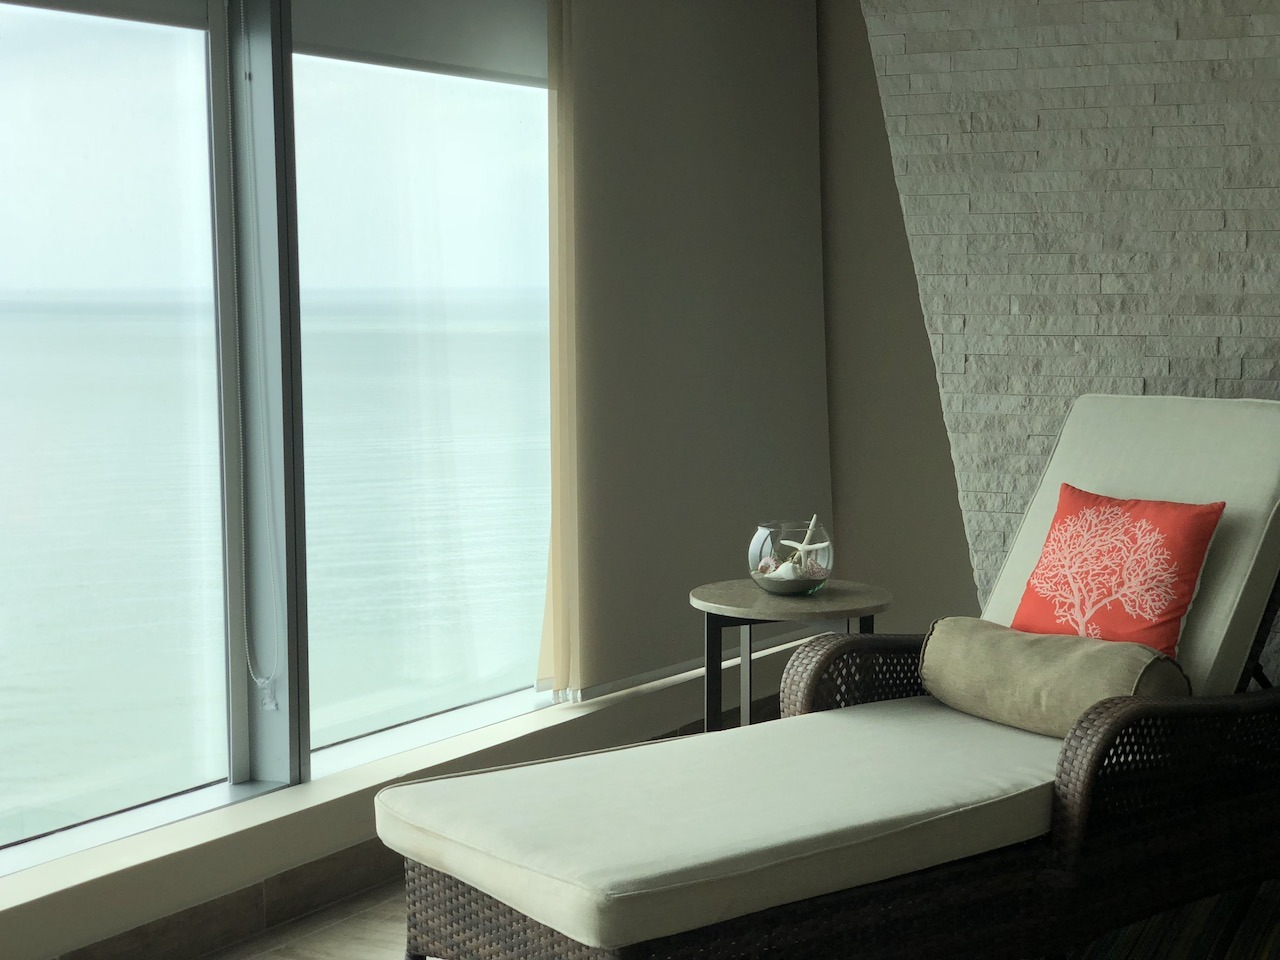 Hyatt Regency Cartagena spa relaxation